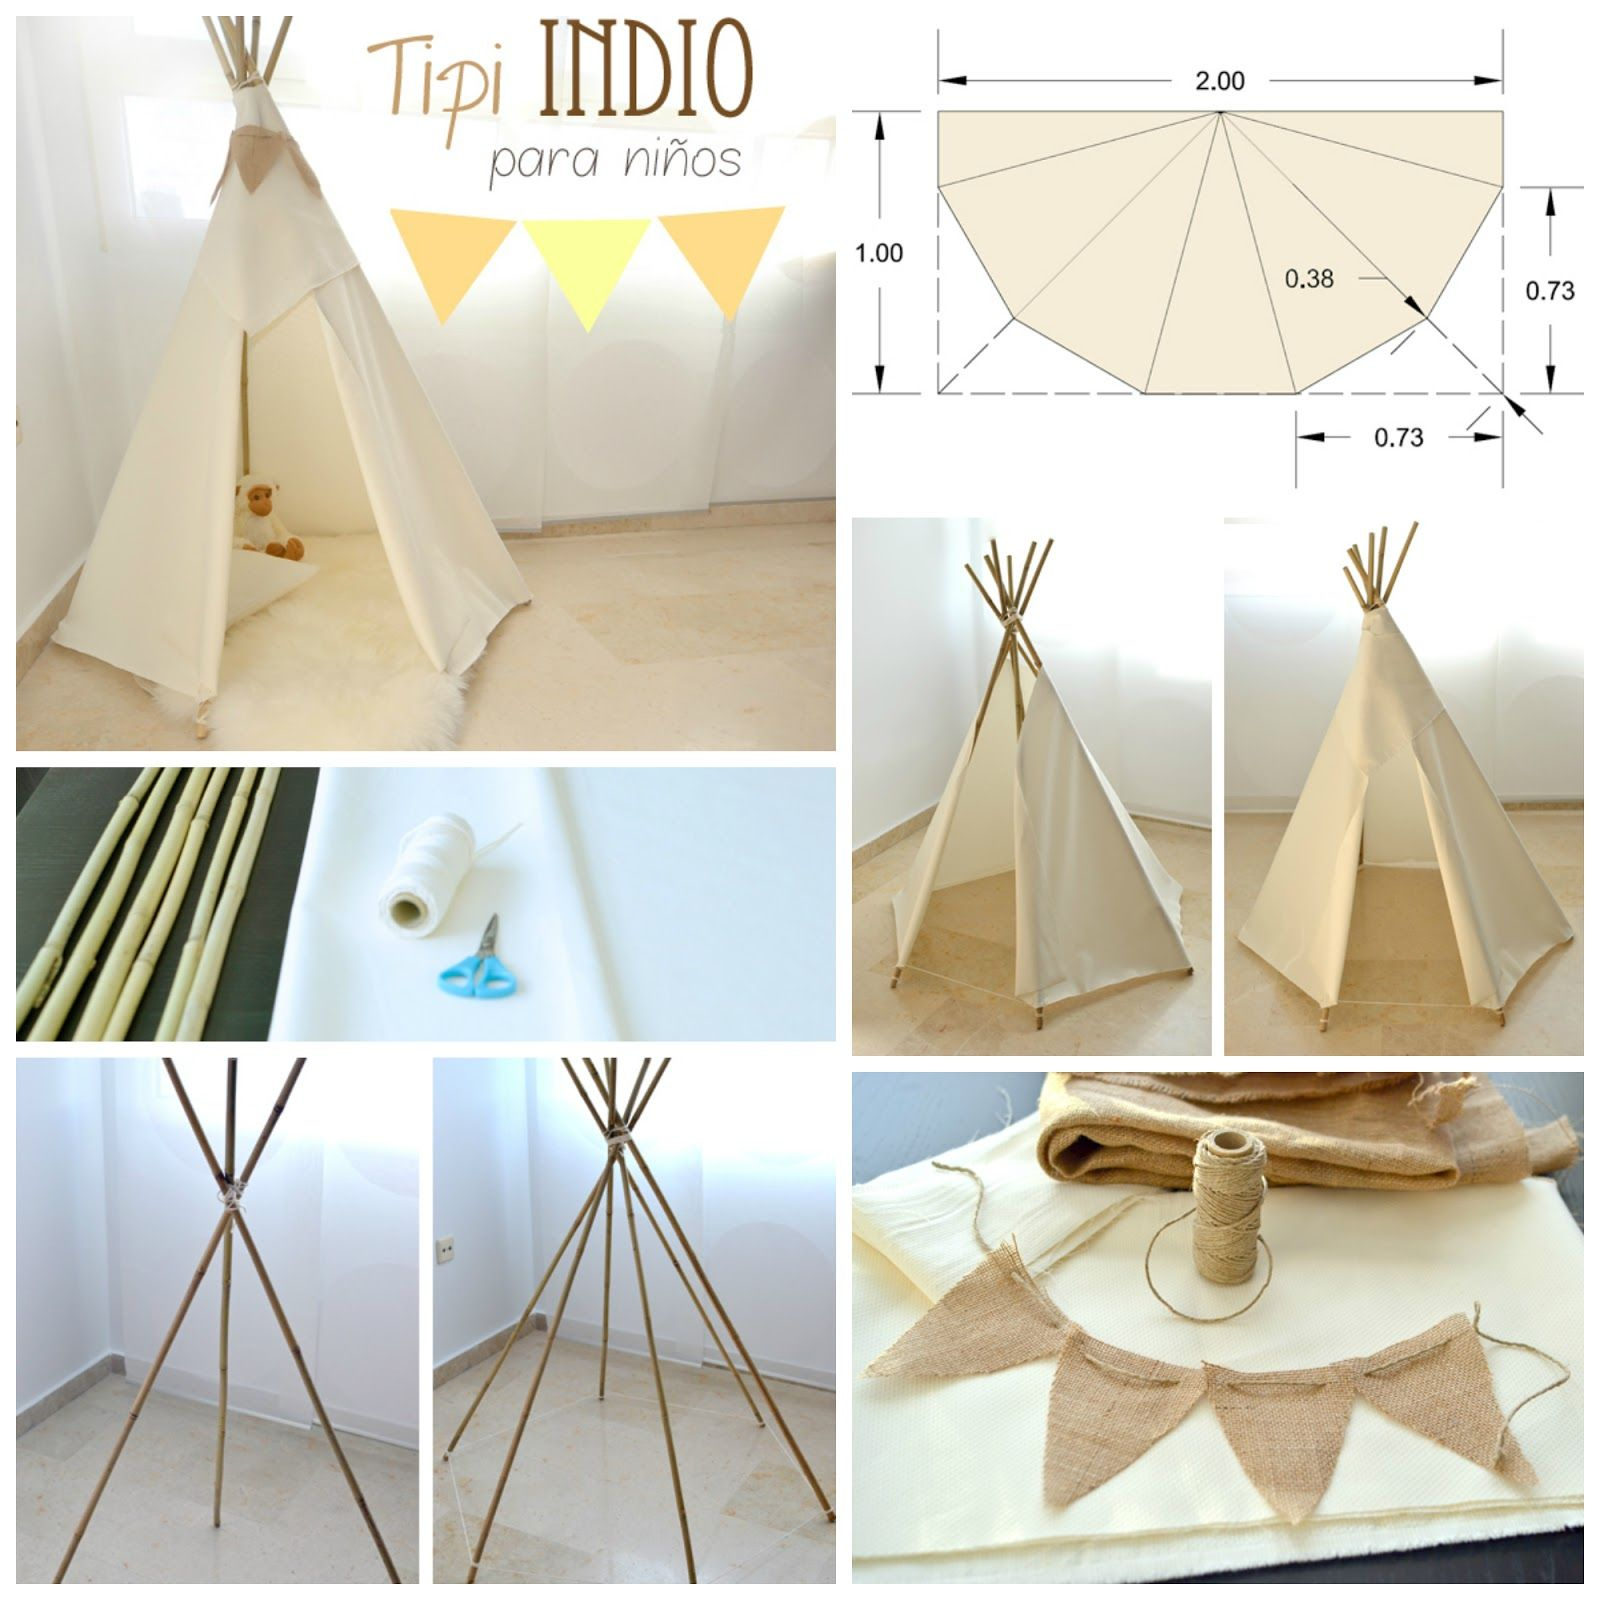 blanco y de madera casa patio pinterest tipi selber bauen kinderzimmer und kinder. Black Bedroom Furniture Sets. Home Design Ideas